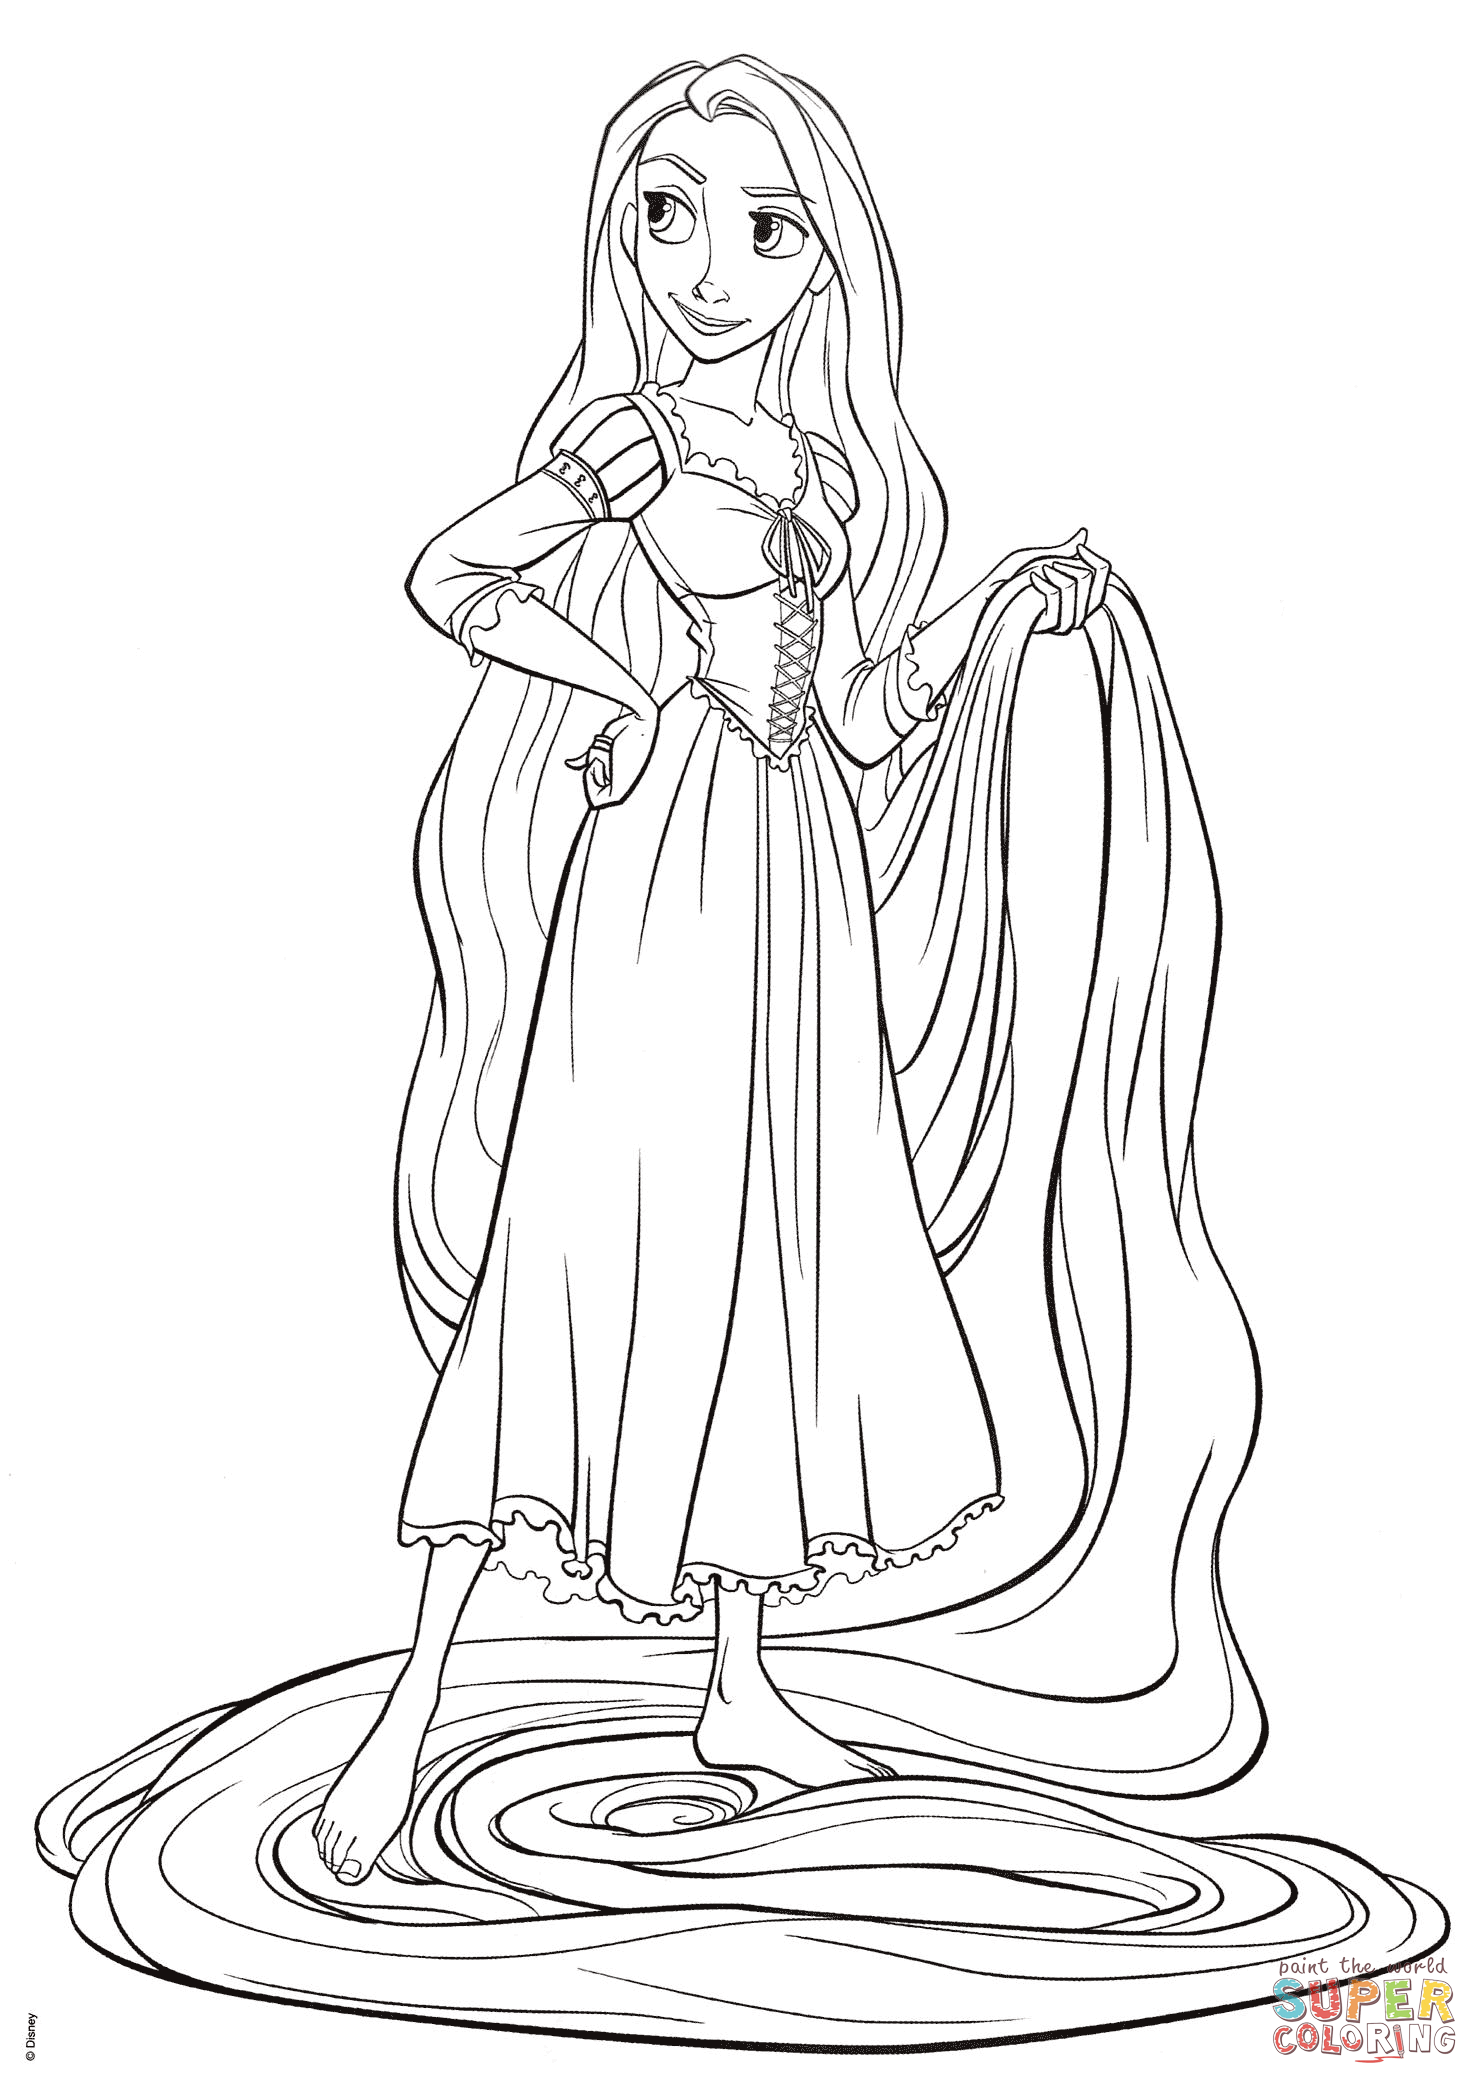 1480x2085 Rapunzel From Tangled Coloring Page Free Printable Pages